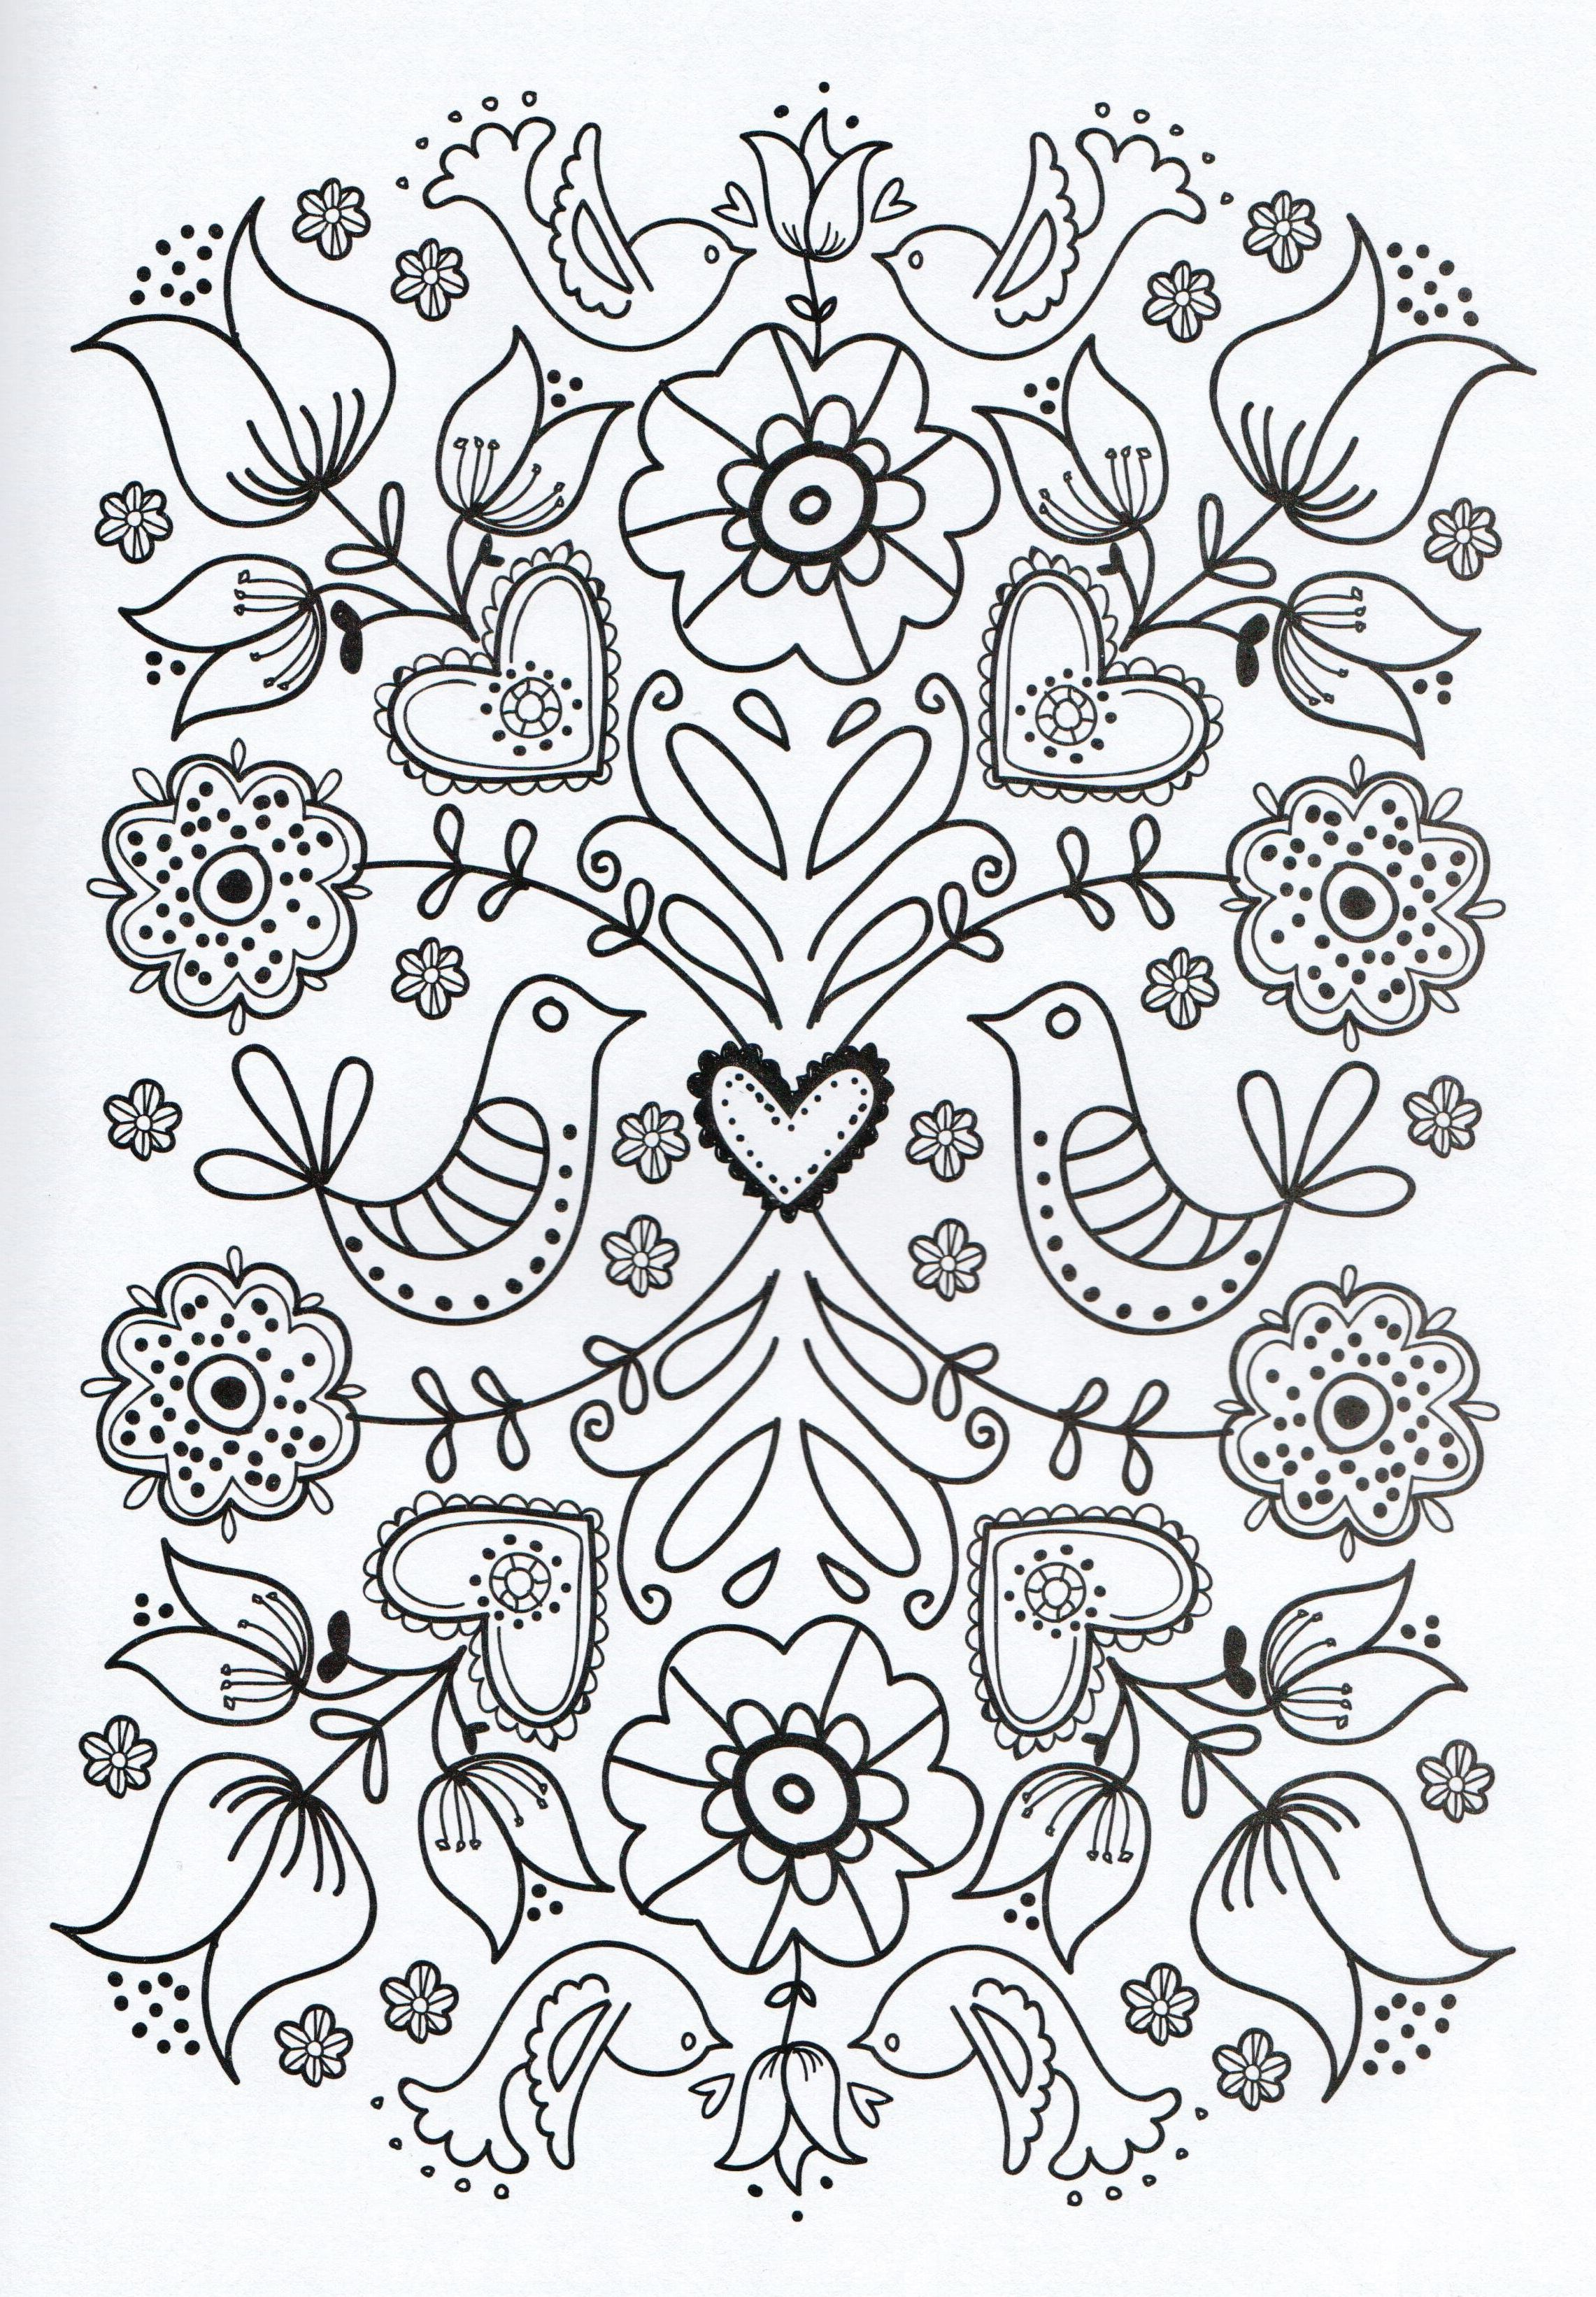 This is a photo of Amazing Printable Coloring Pages for Adults Flowers